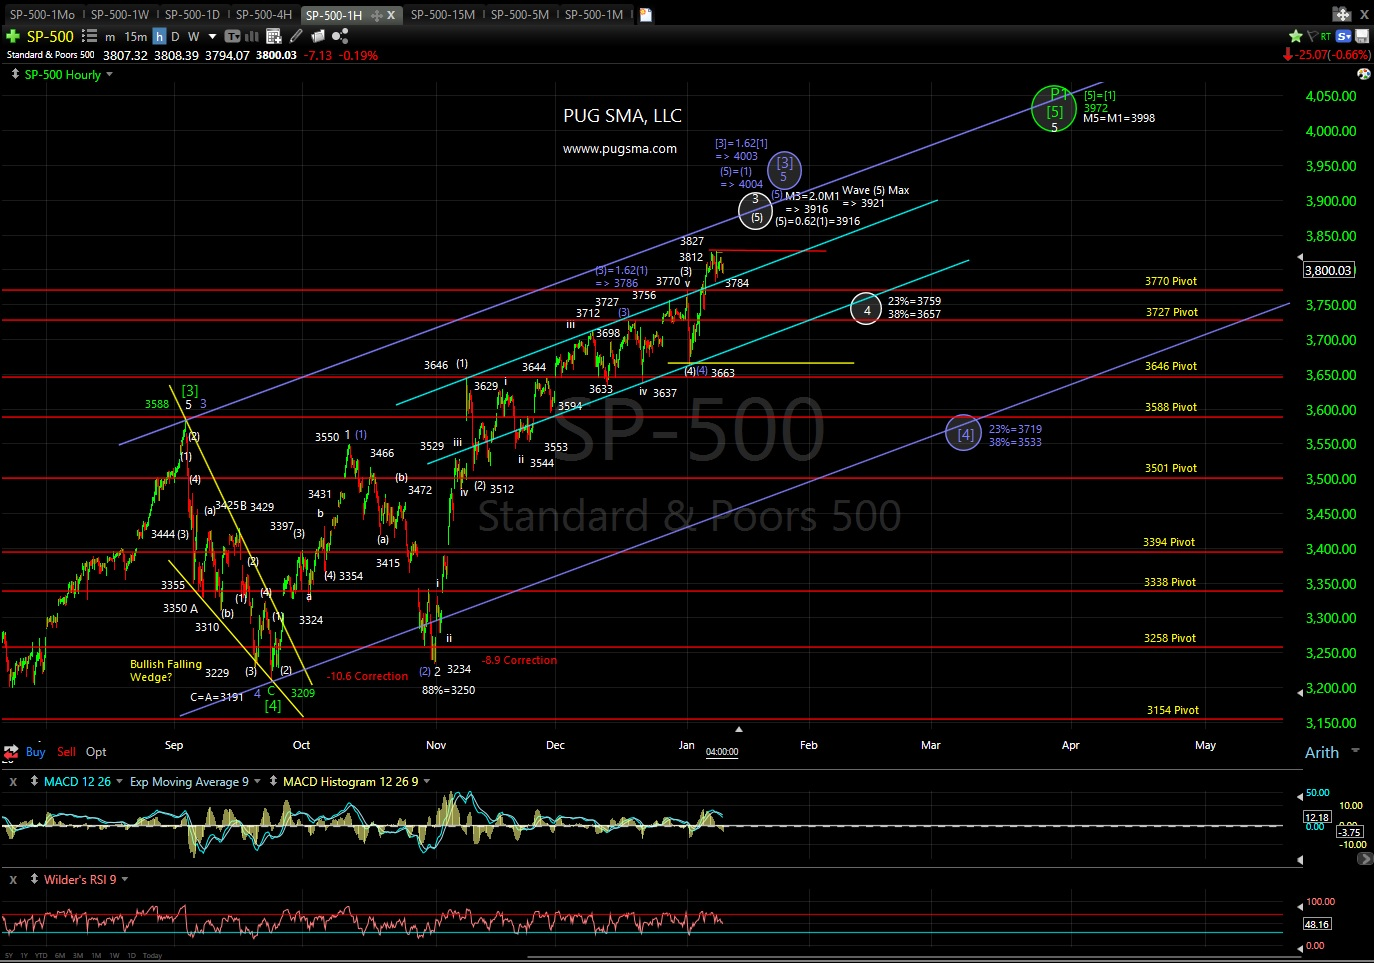 SP500 Technical Anaylsis